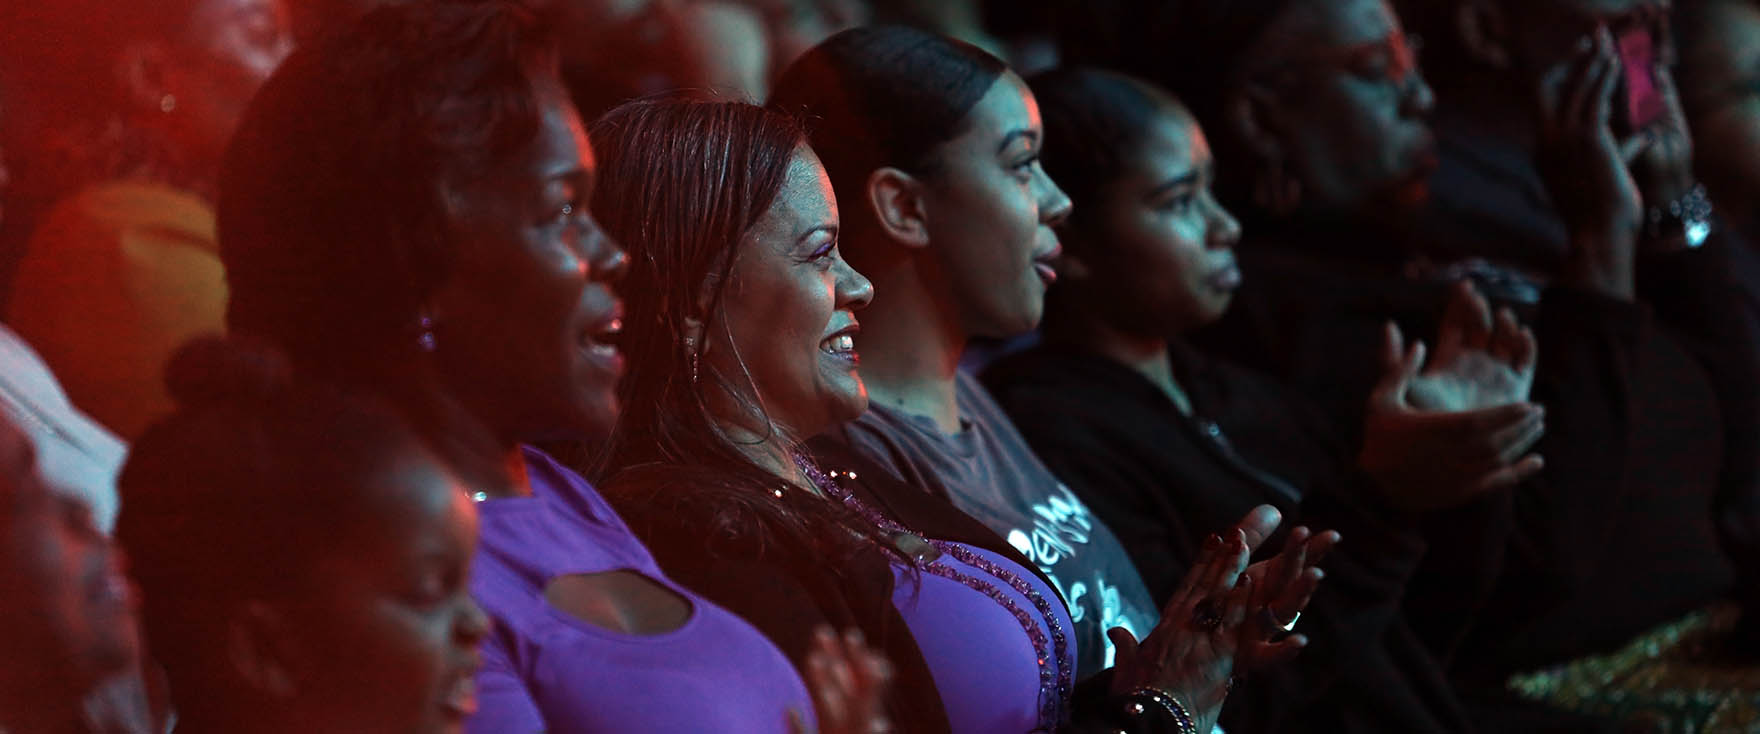 Audience Watching Step Afrika At Strathmore